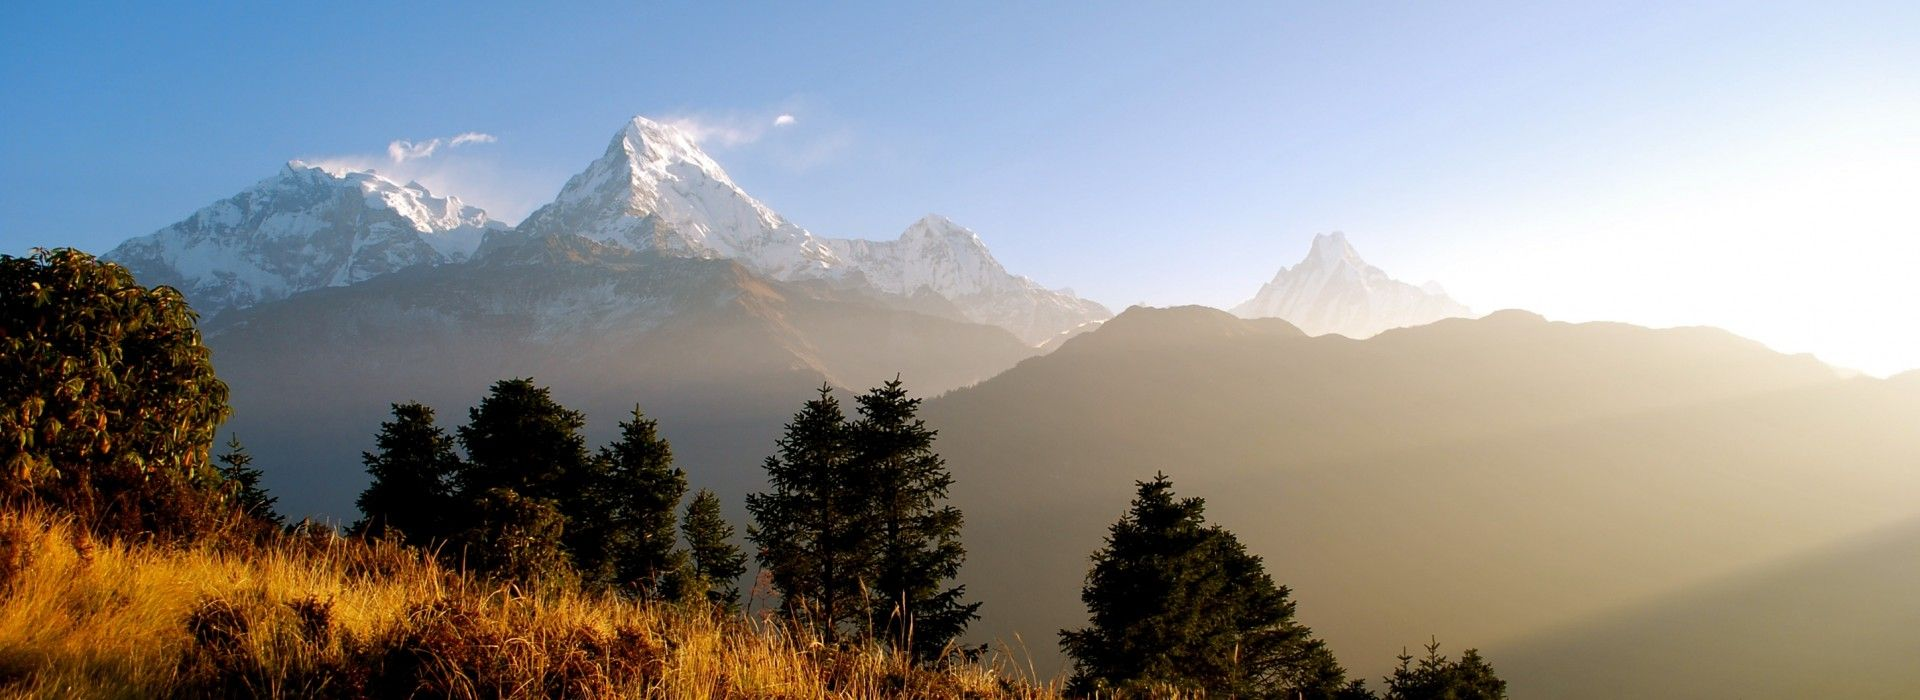 Ama Dablam Base Camp Tours